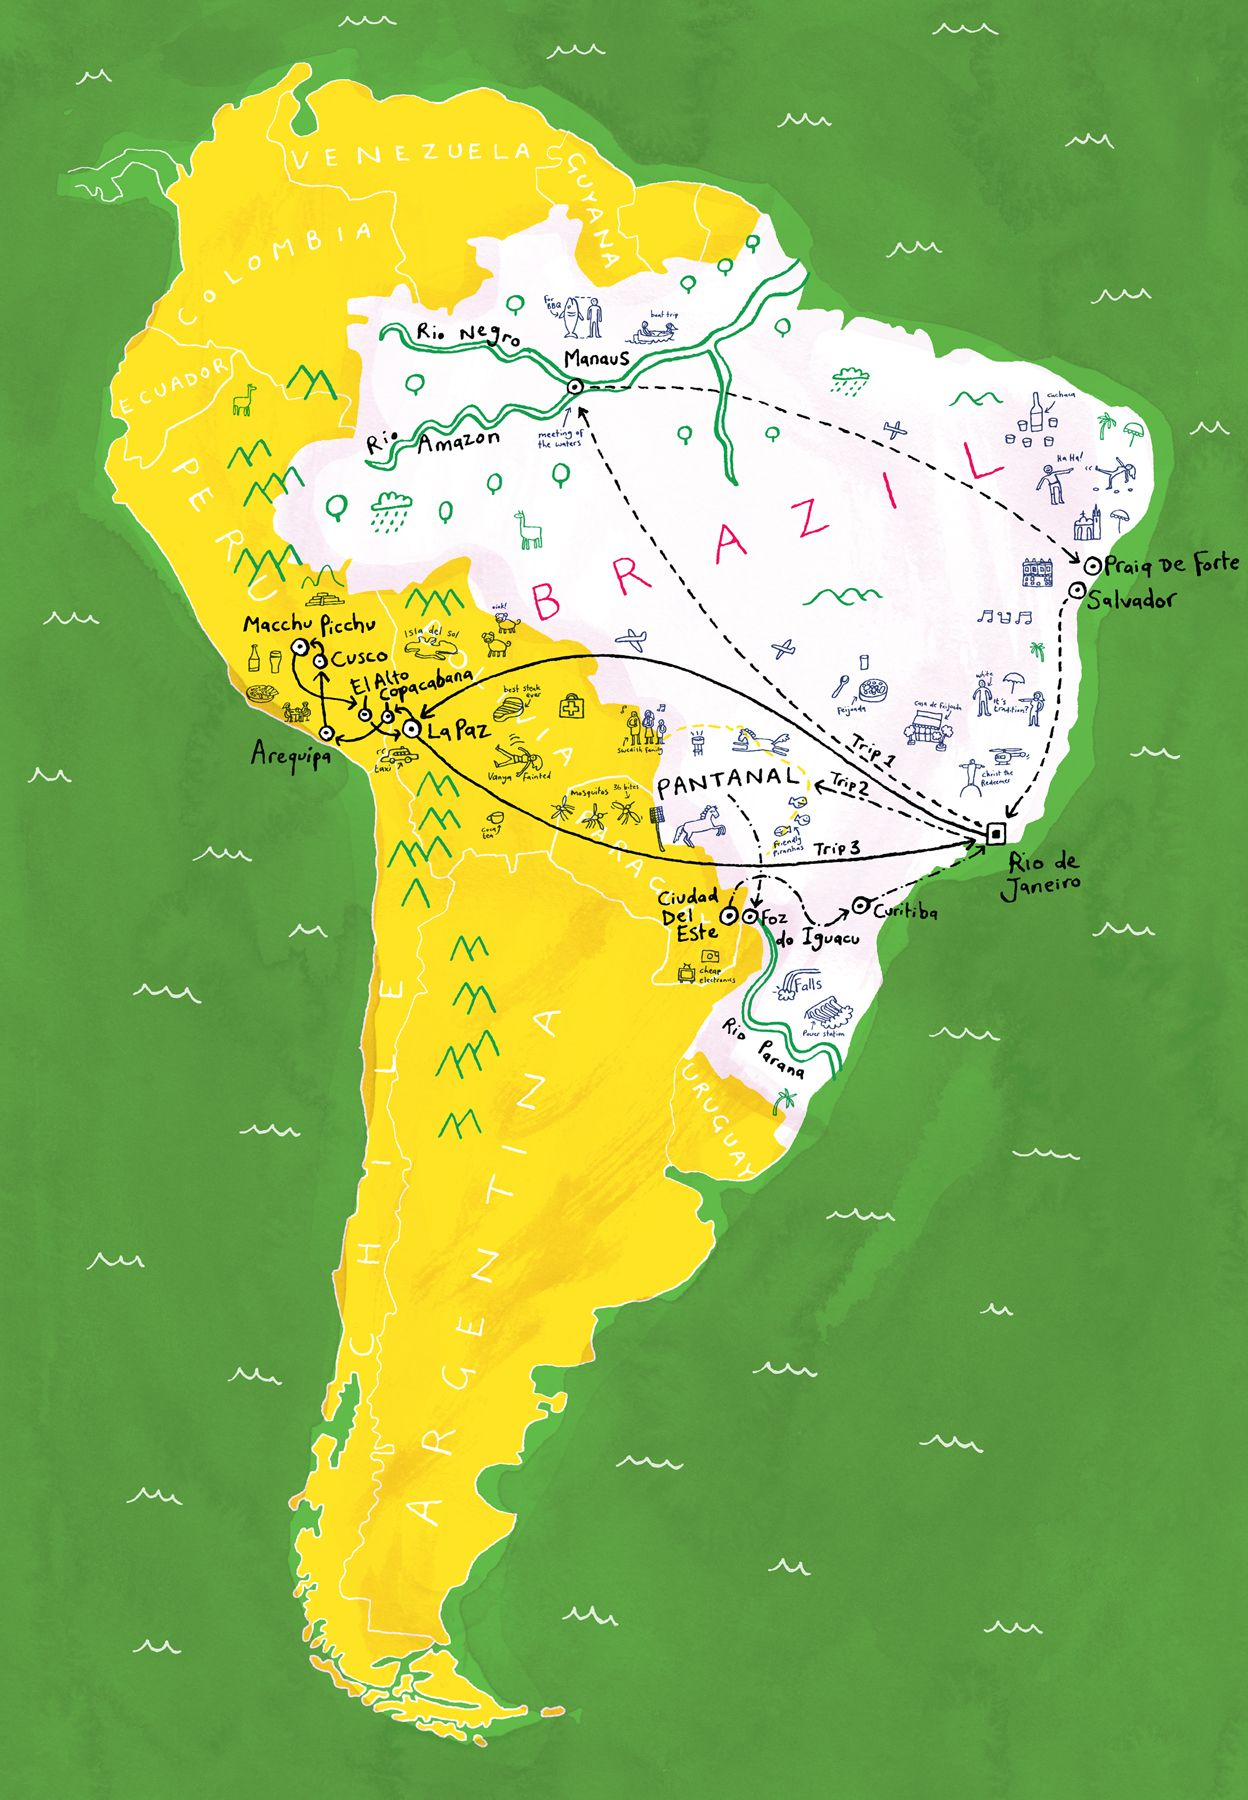 Dominic trevett map of brazil map travel illustration dominic trevett map of brazil gumiabroncs Image collections